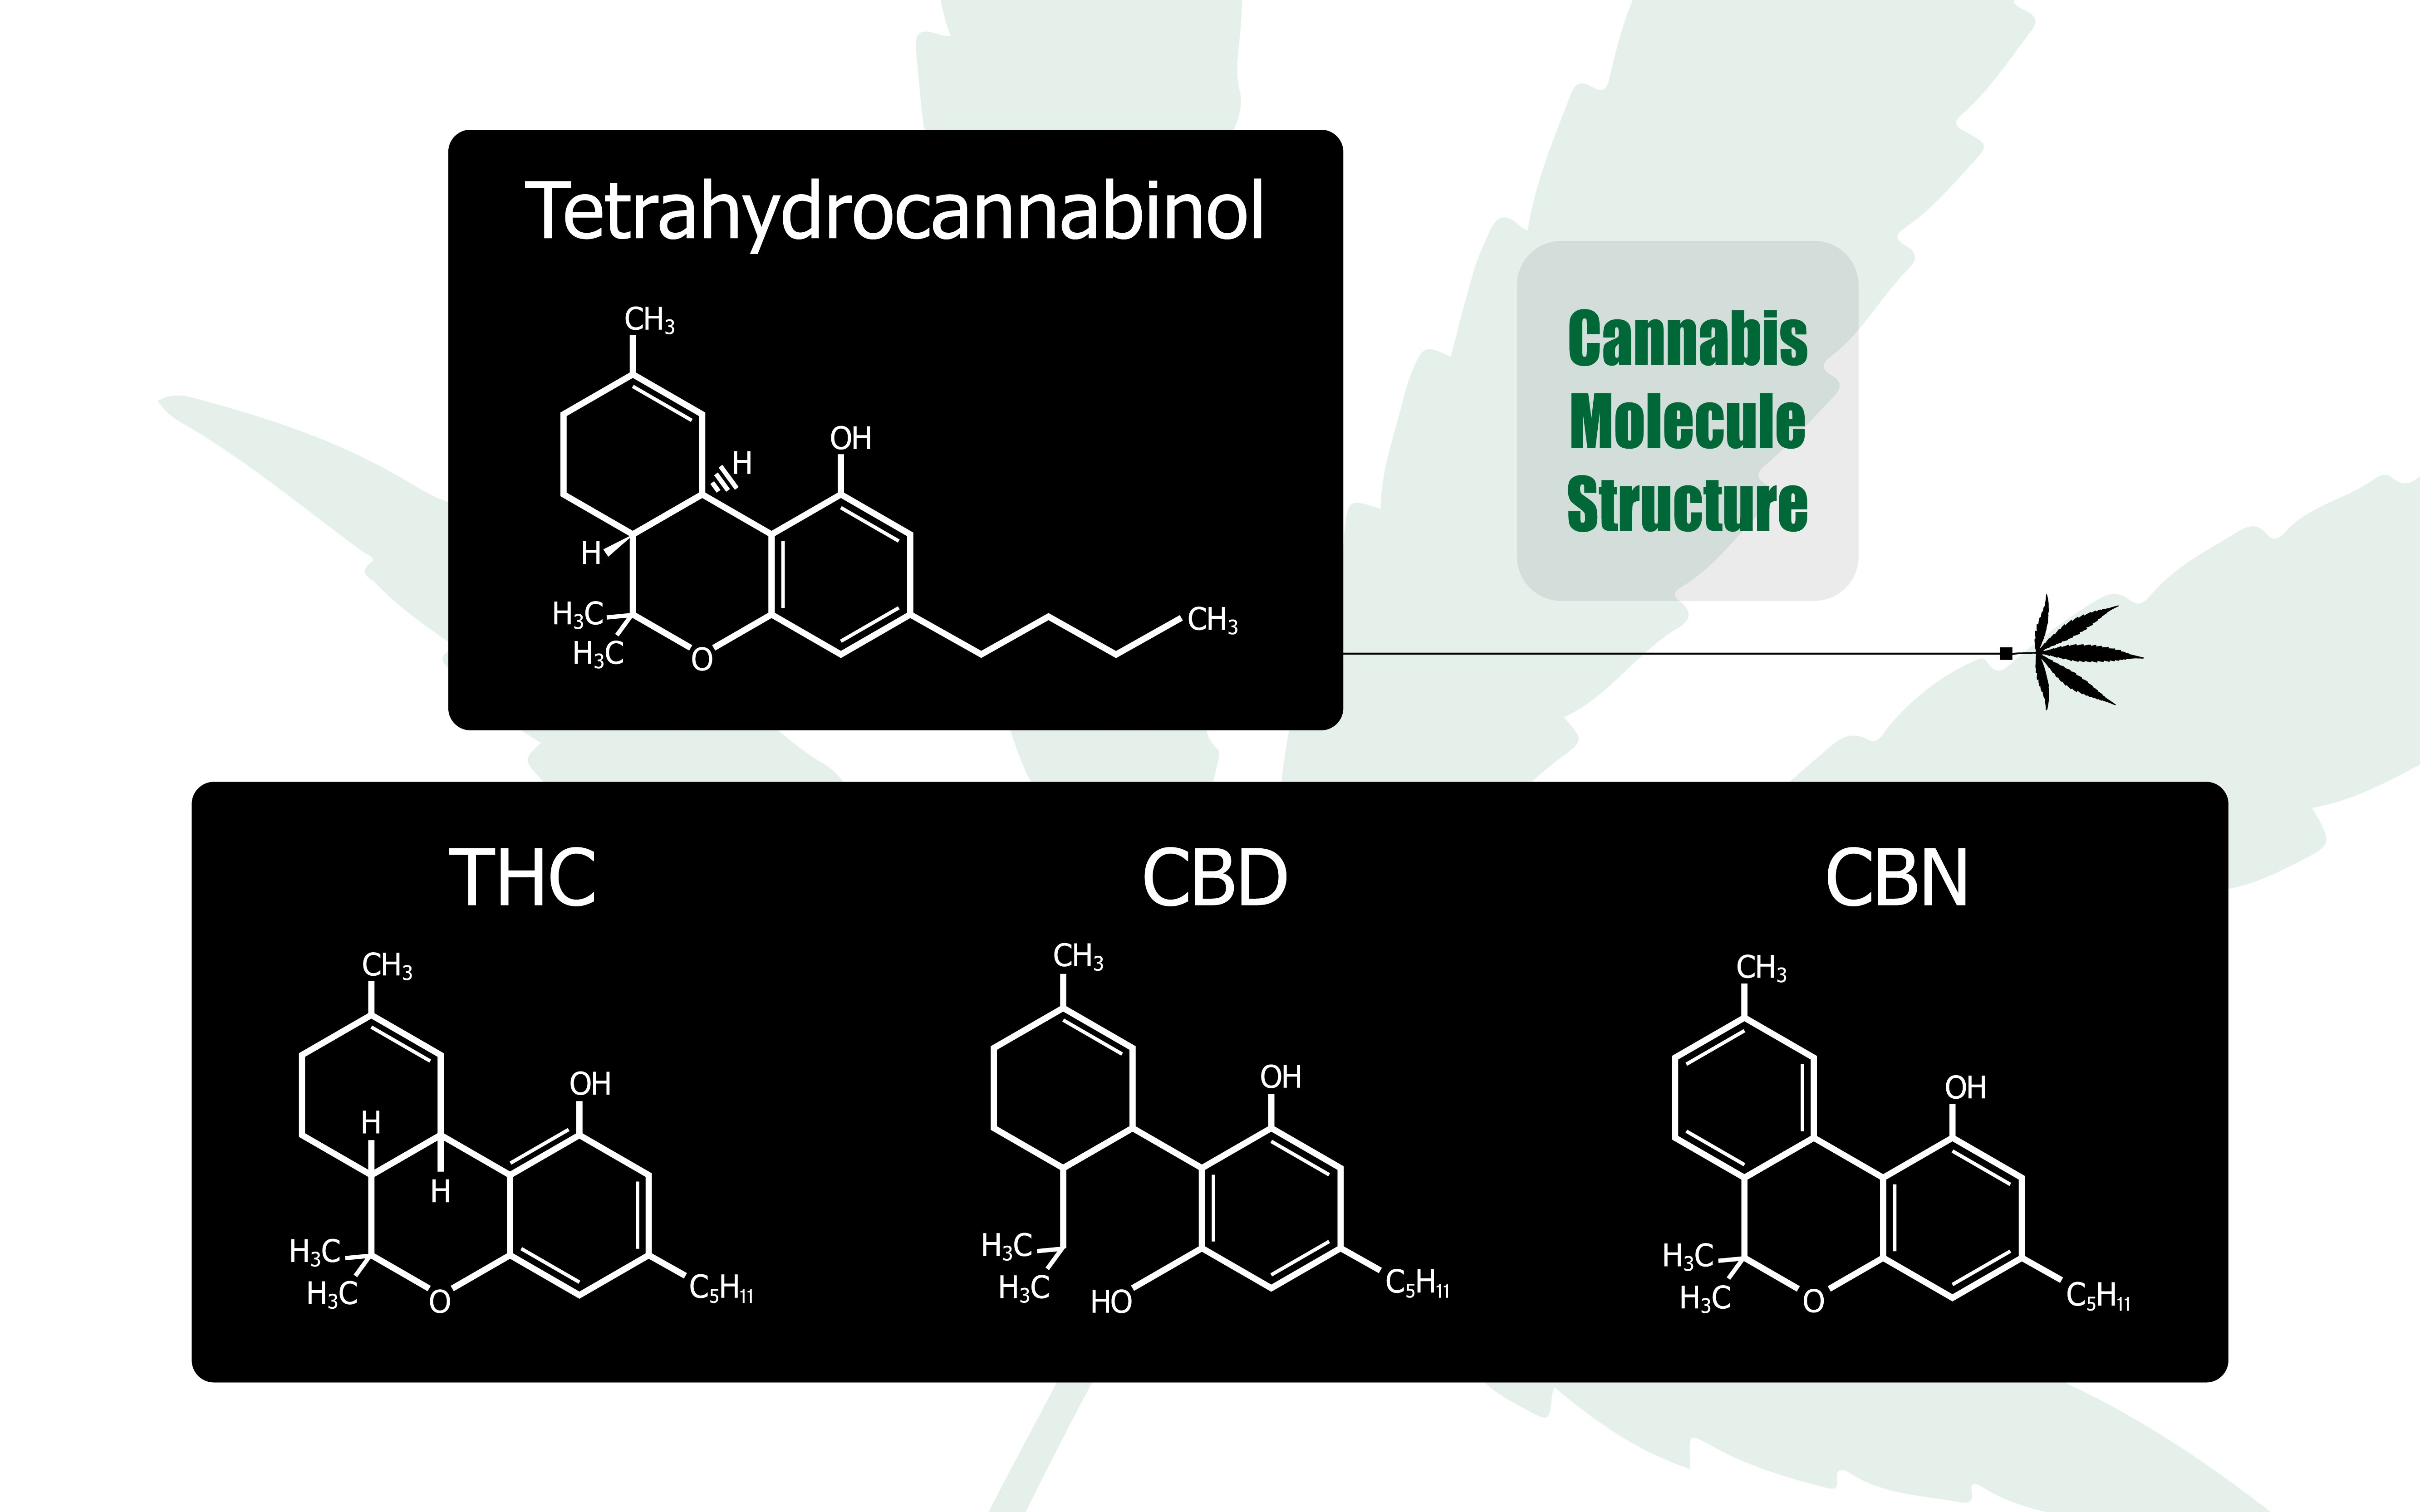 CBD THC entourage effect counteracts symbiosis immune system psyche cannabis medical marijuana cannabinoid endocannabinoid modulate